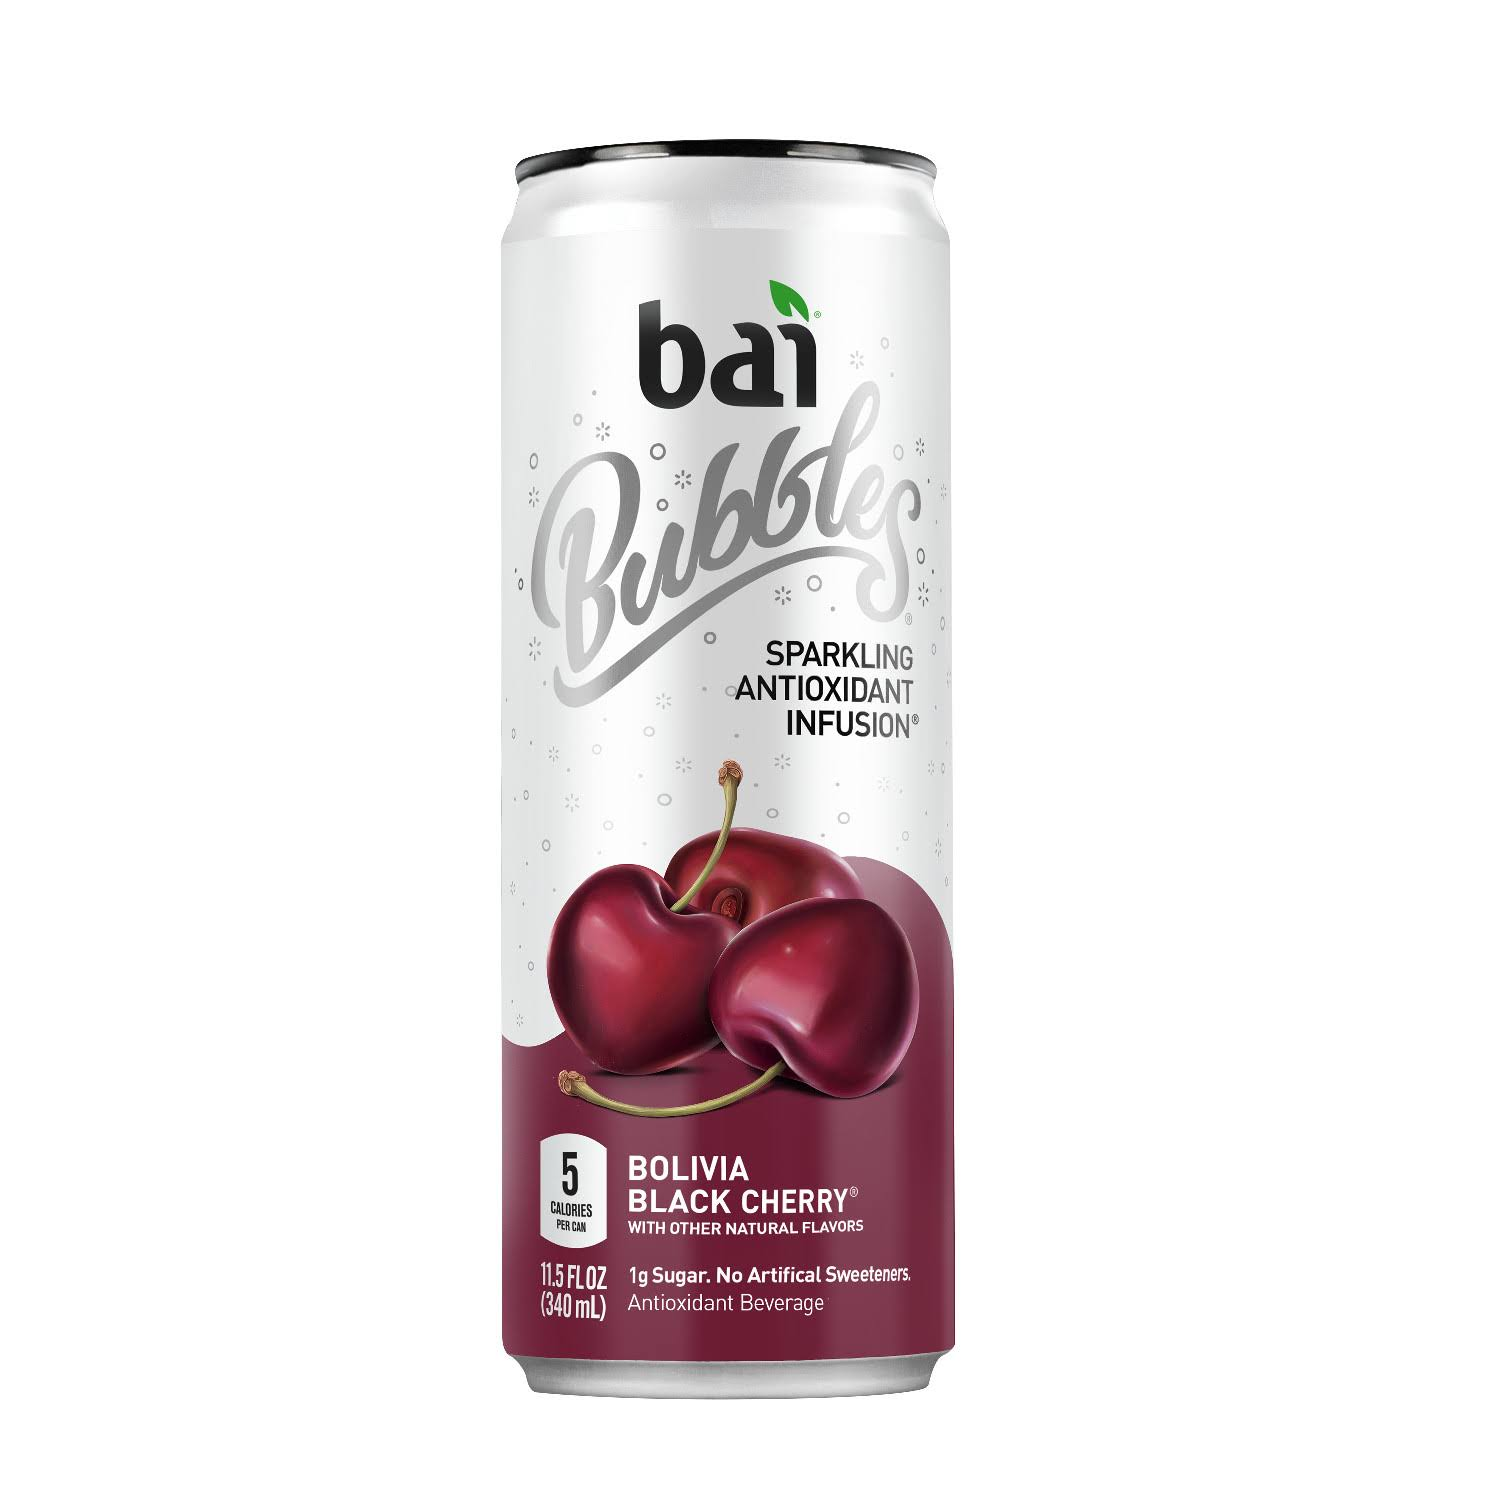 Bai Bubbles Sparkling Antioxidant Infused Beverage - Bolivia Black Cherry